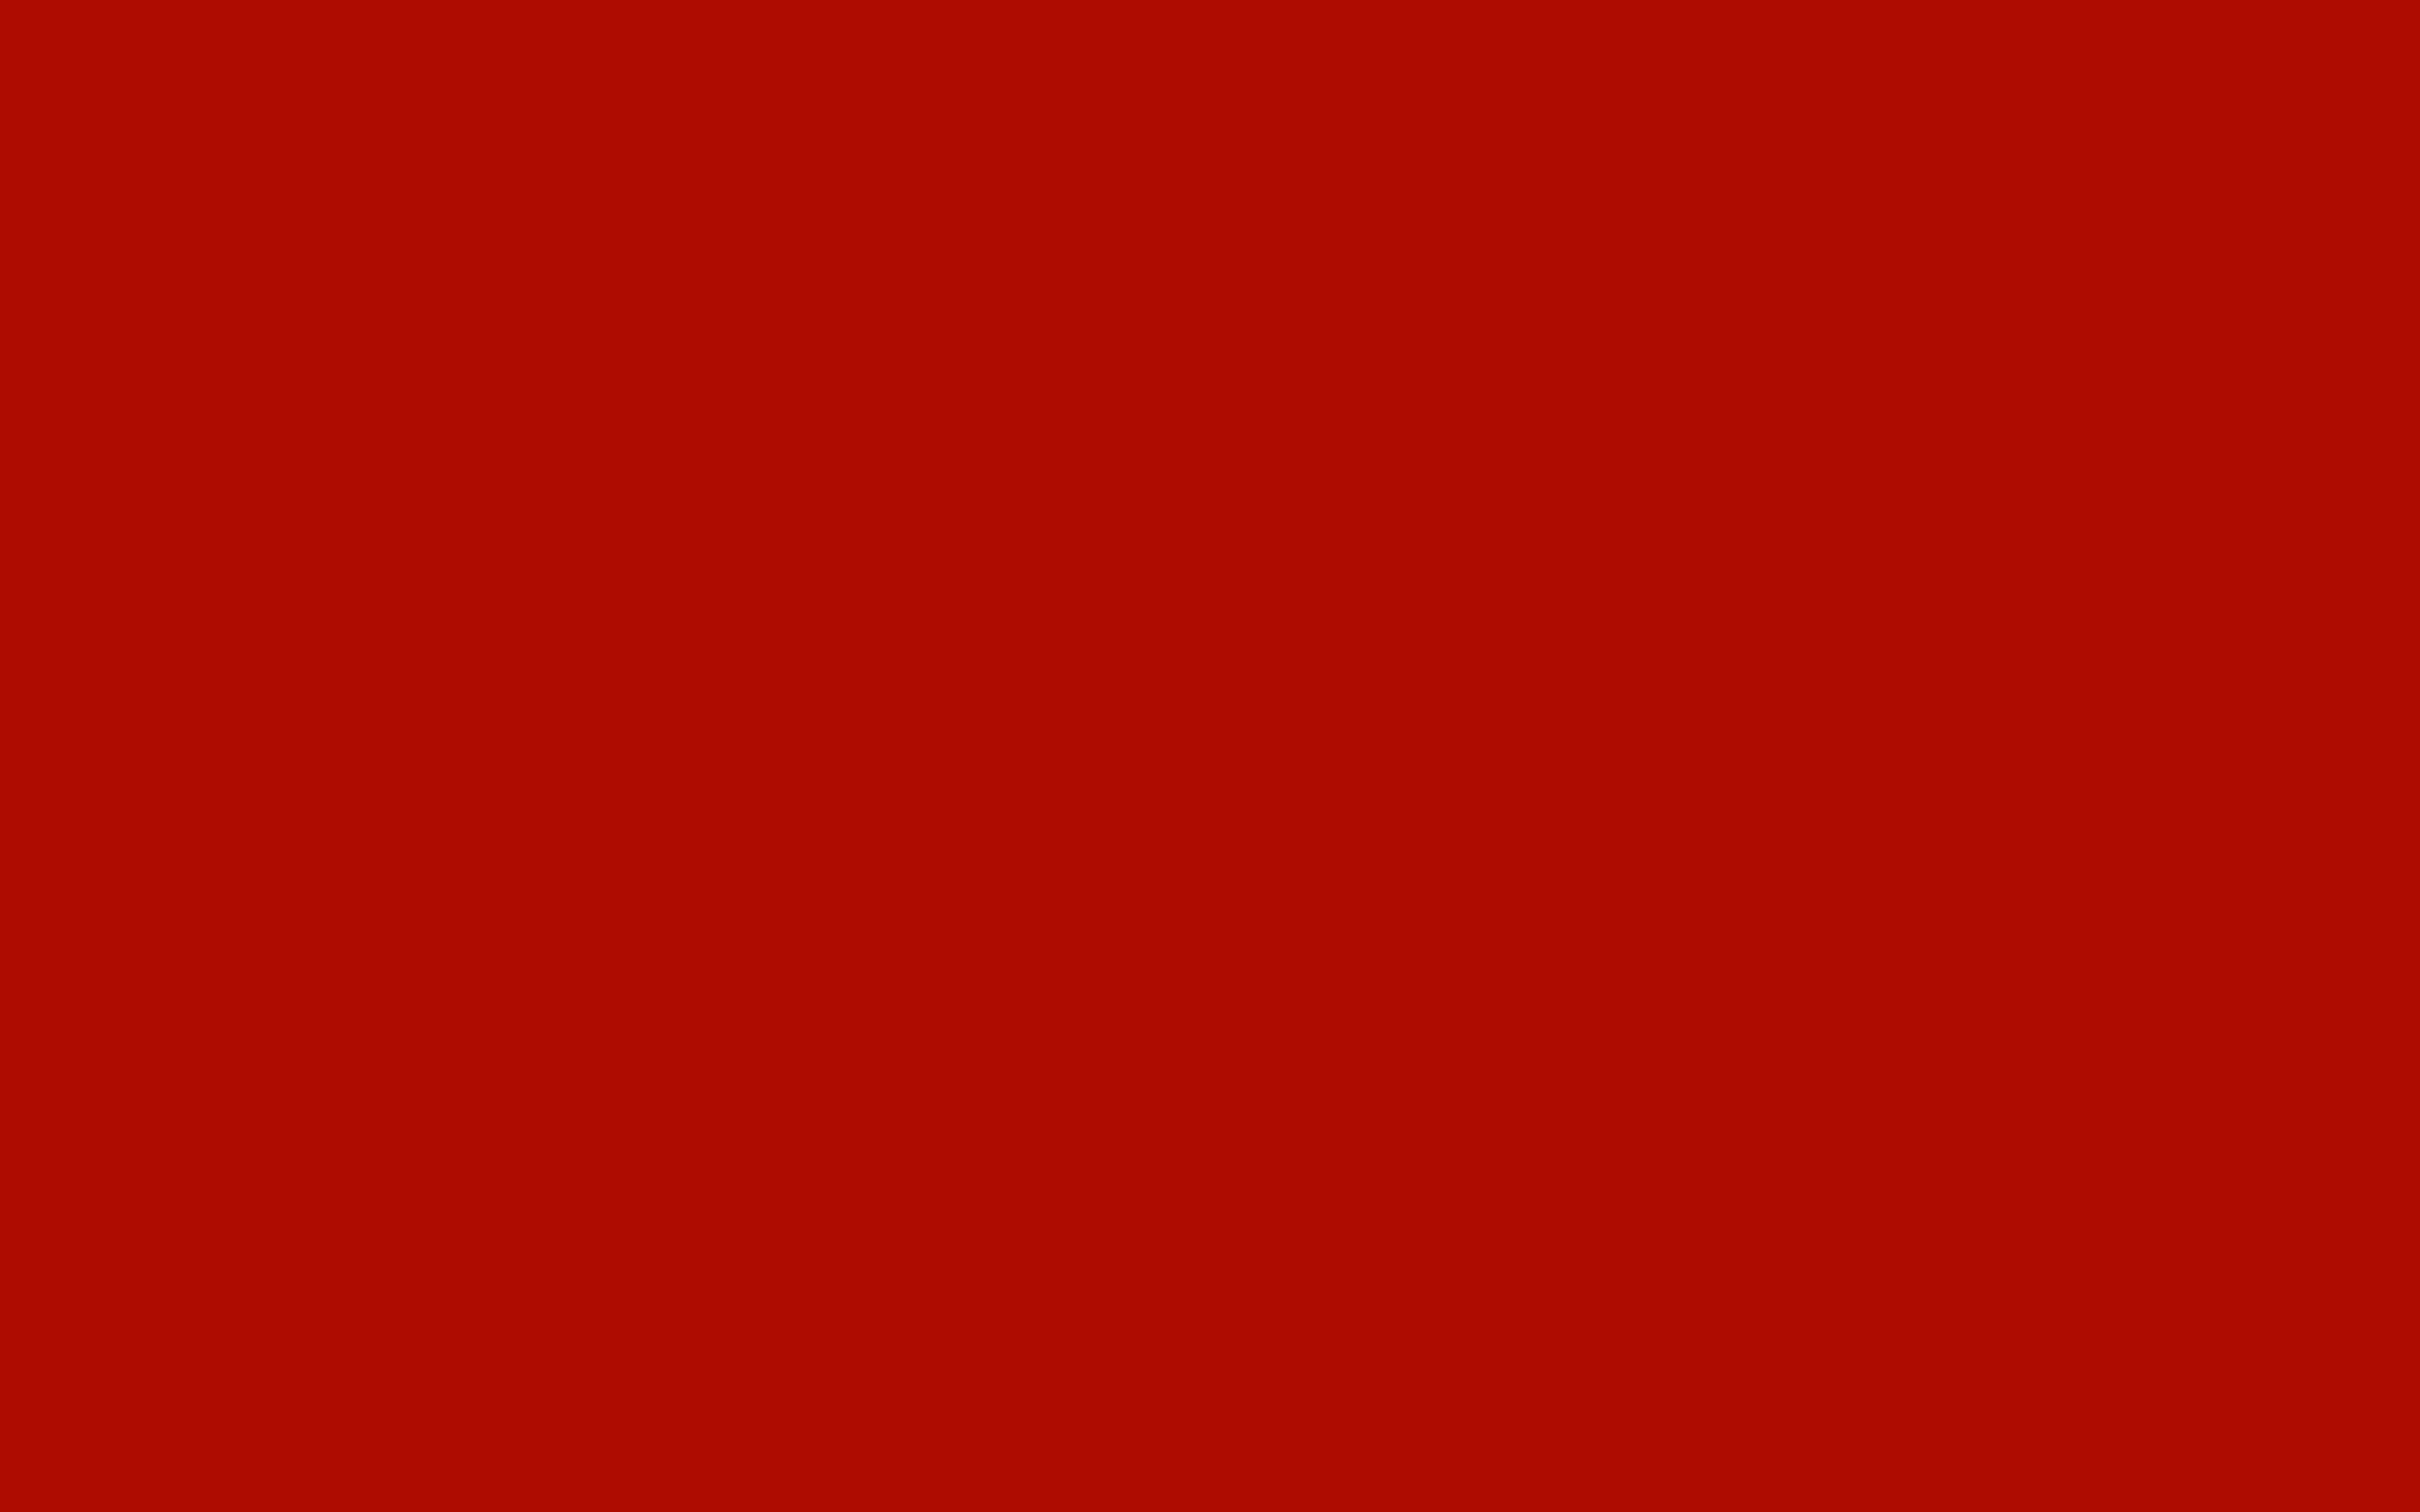 2560x1600 Mordant Red 19 Solid Color Background